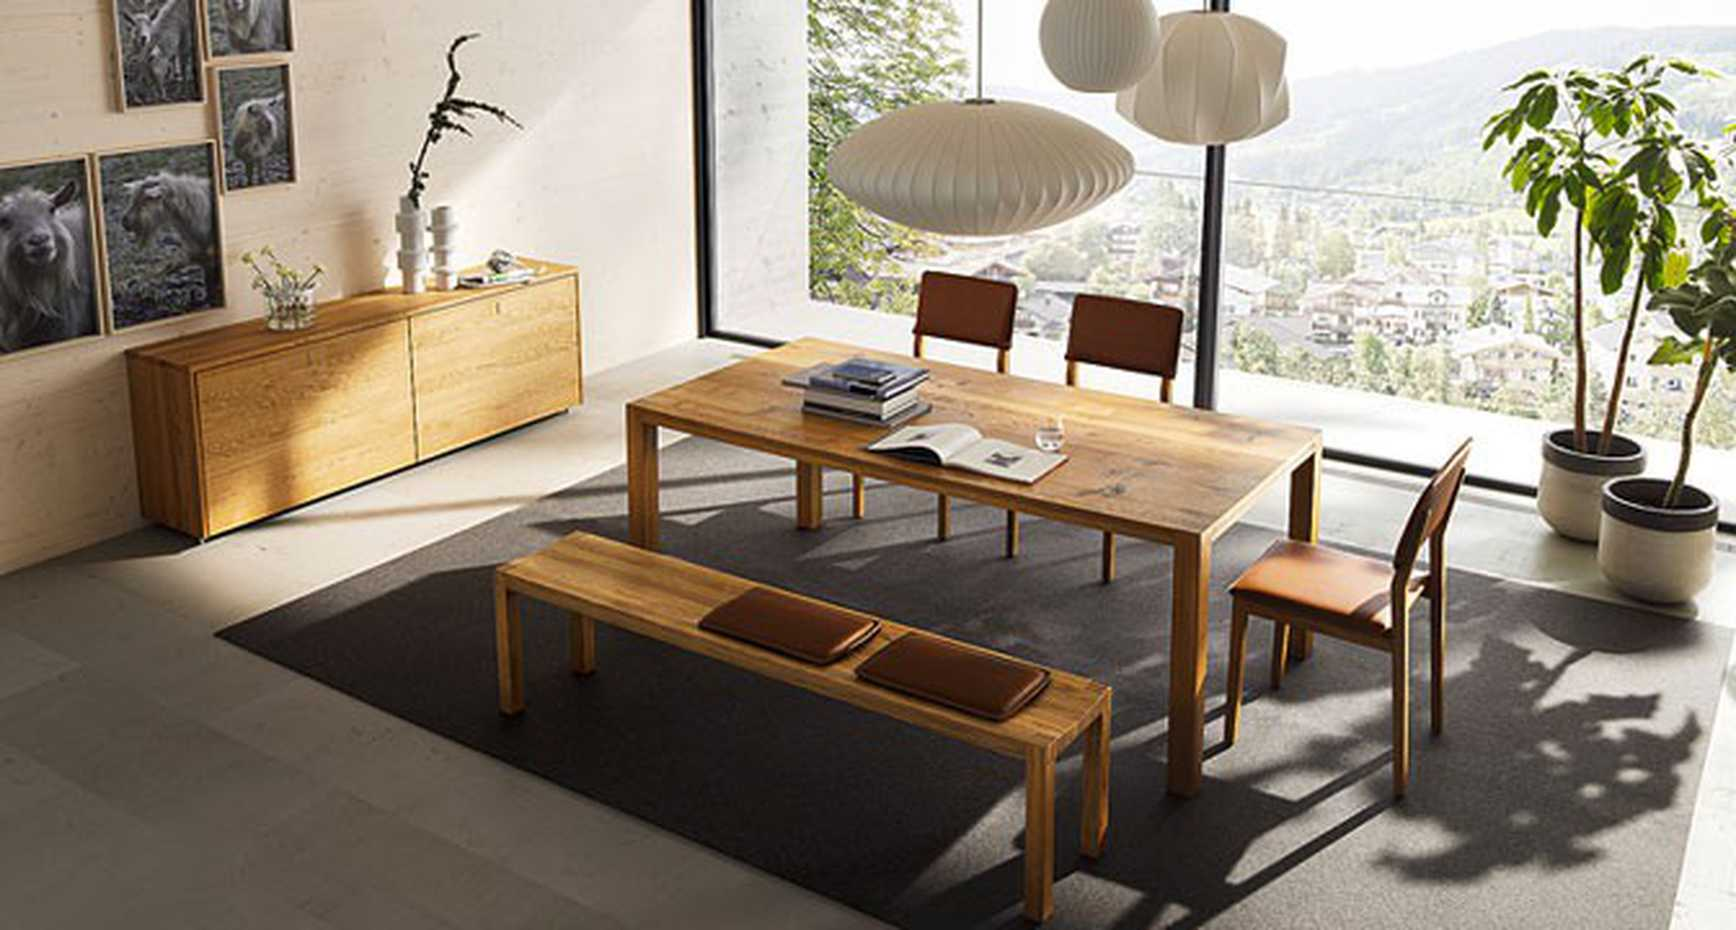 Loft Table by Team 7 product image 1